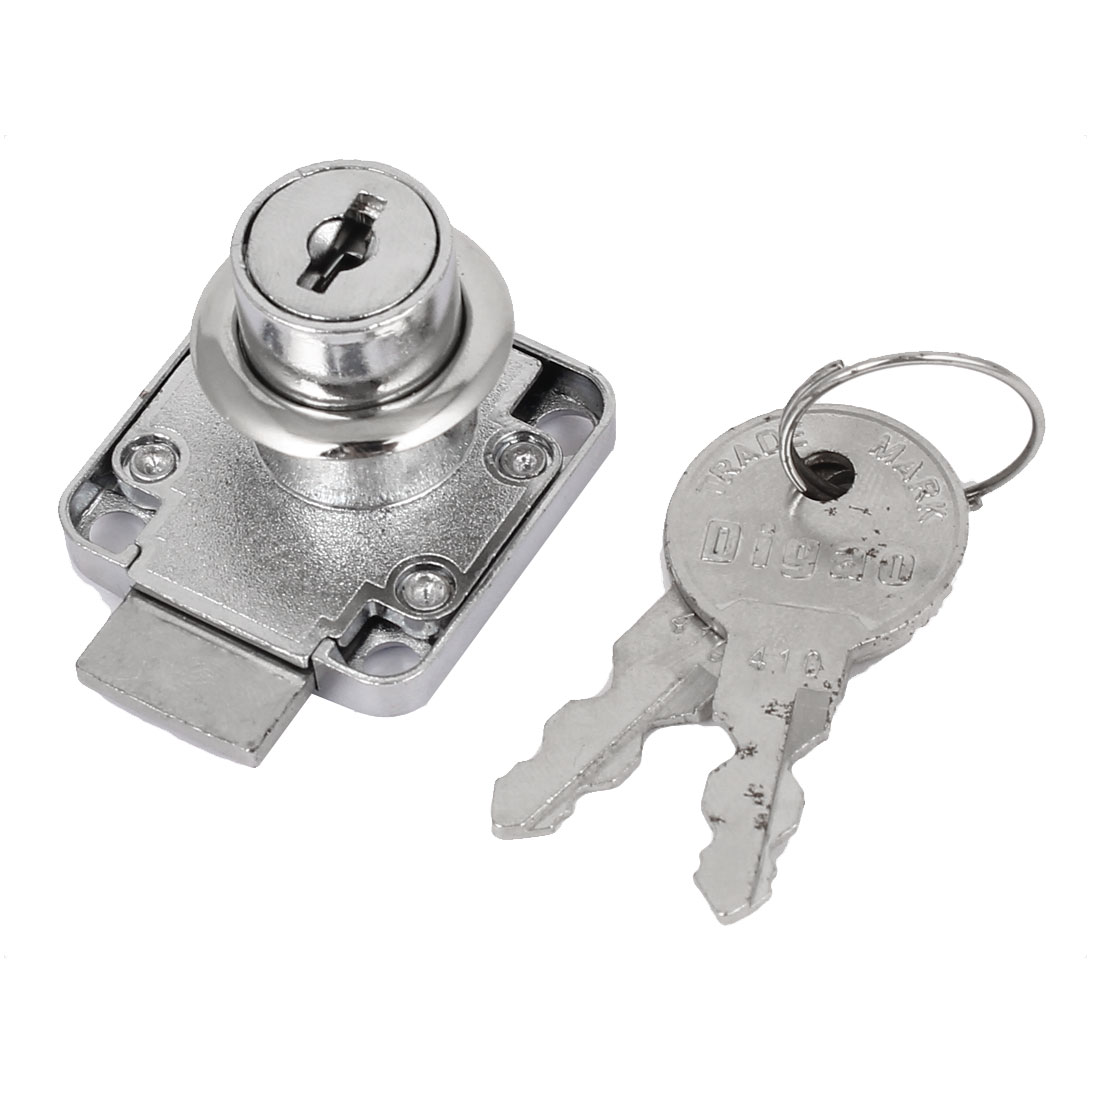 16mm x 20mm Cylindrical Head Cabinet Zinc Alloy Drawer Lock Silver Tone w 2 Keys